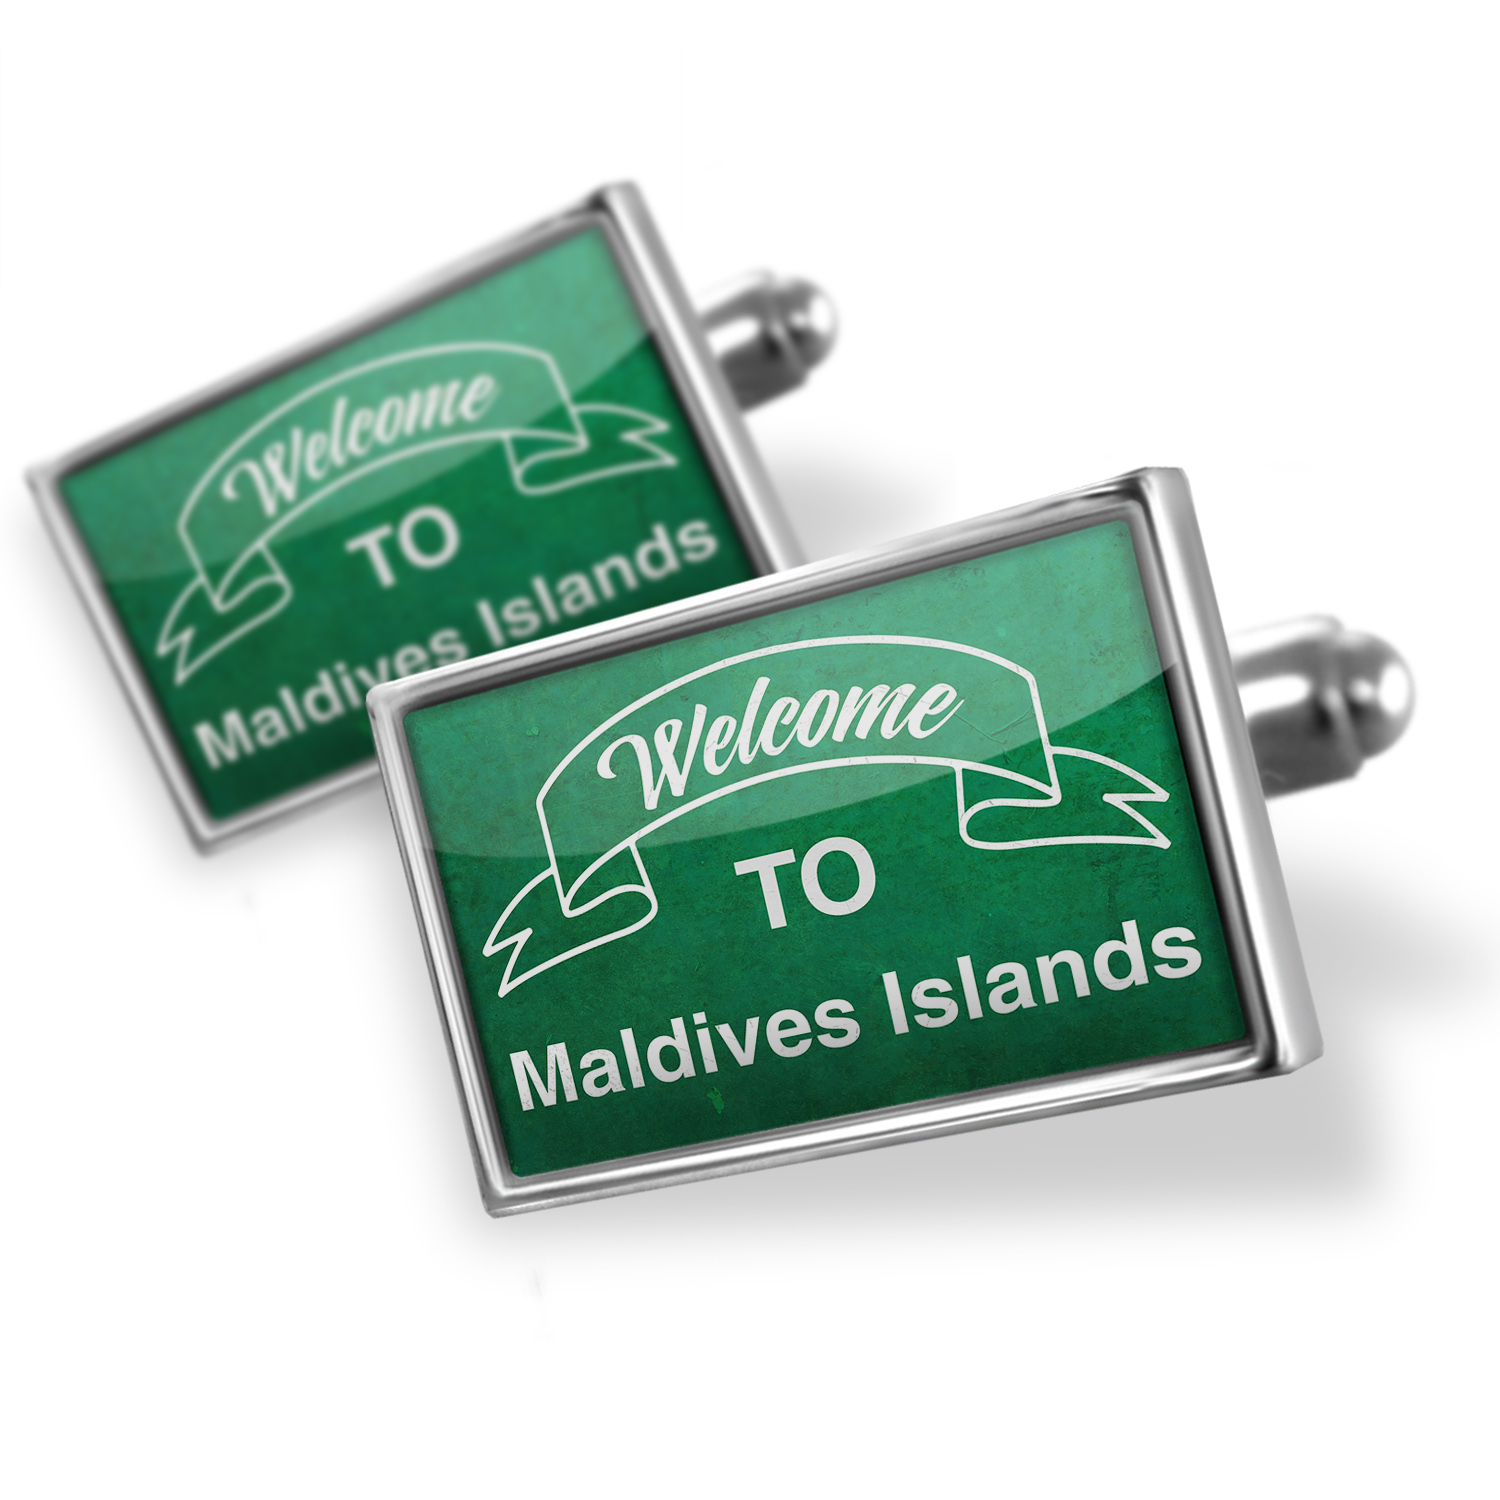 Cufflinks Green Sign Welcome To Maldives Islands - NEONBLOND